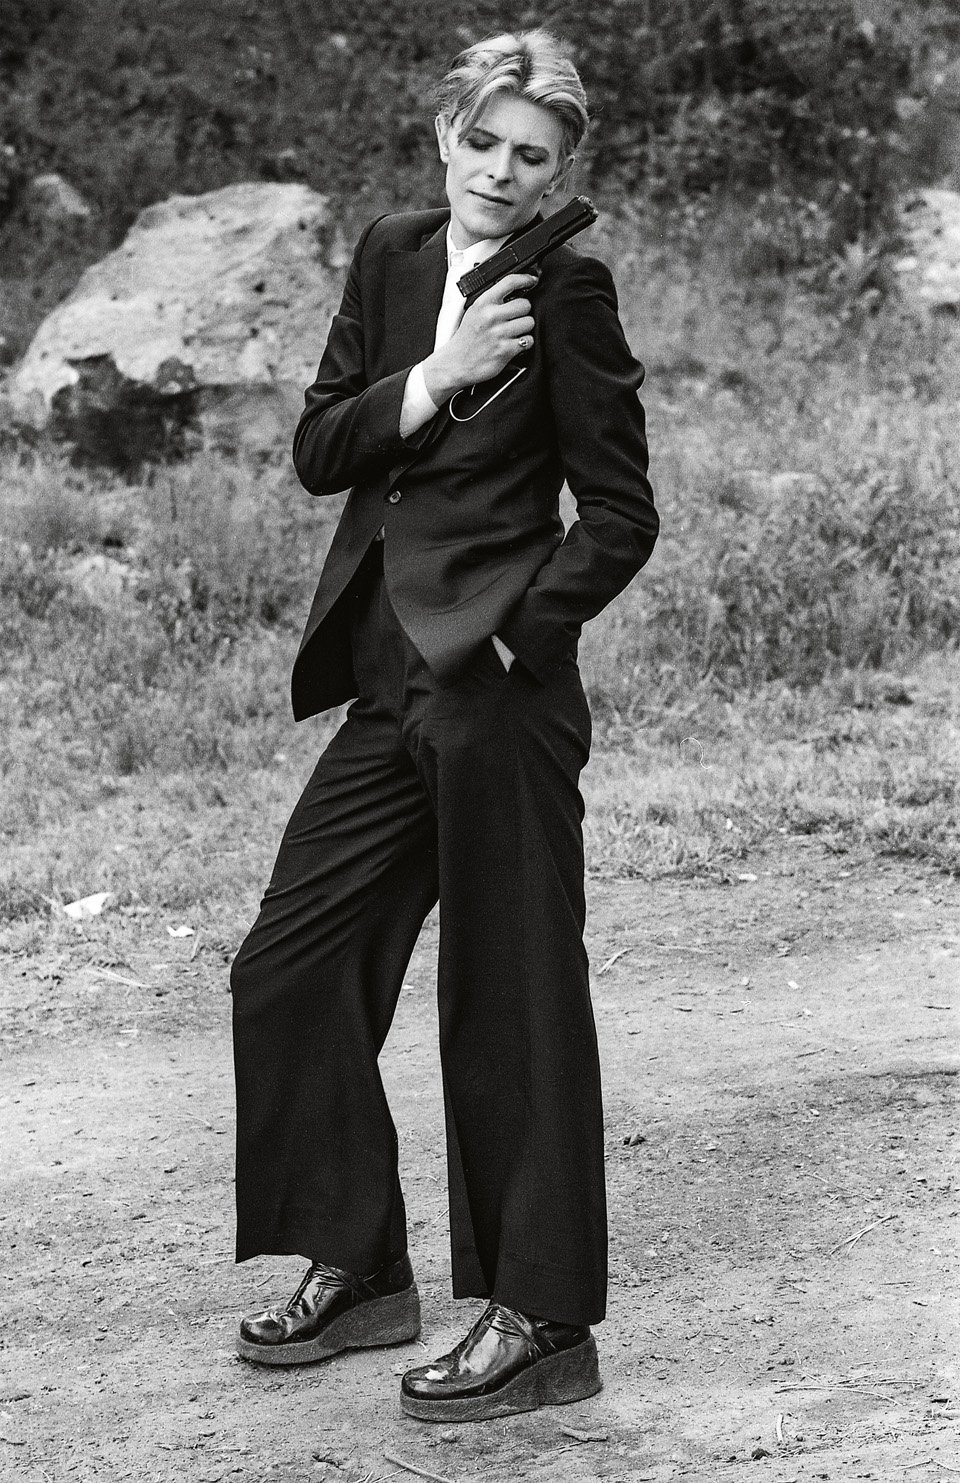 David Bowie strikes a pose on set. Copyright: © 1976 Studiocanal Films Ltd. All rights reserved.